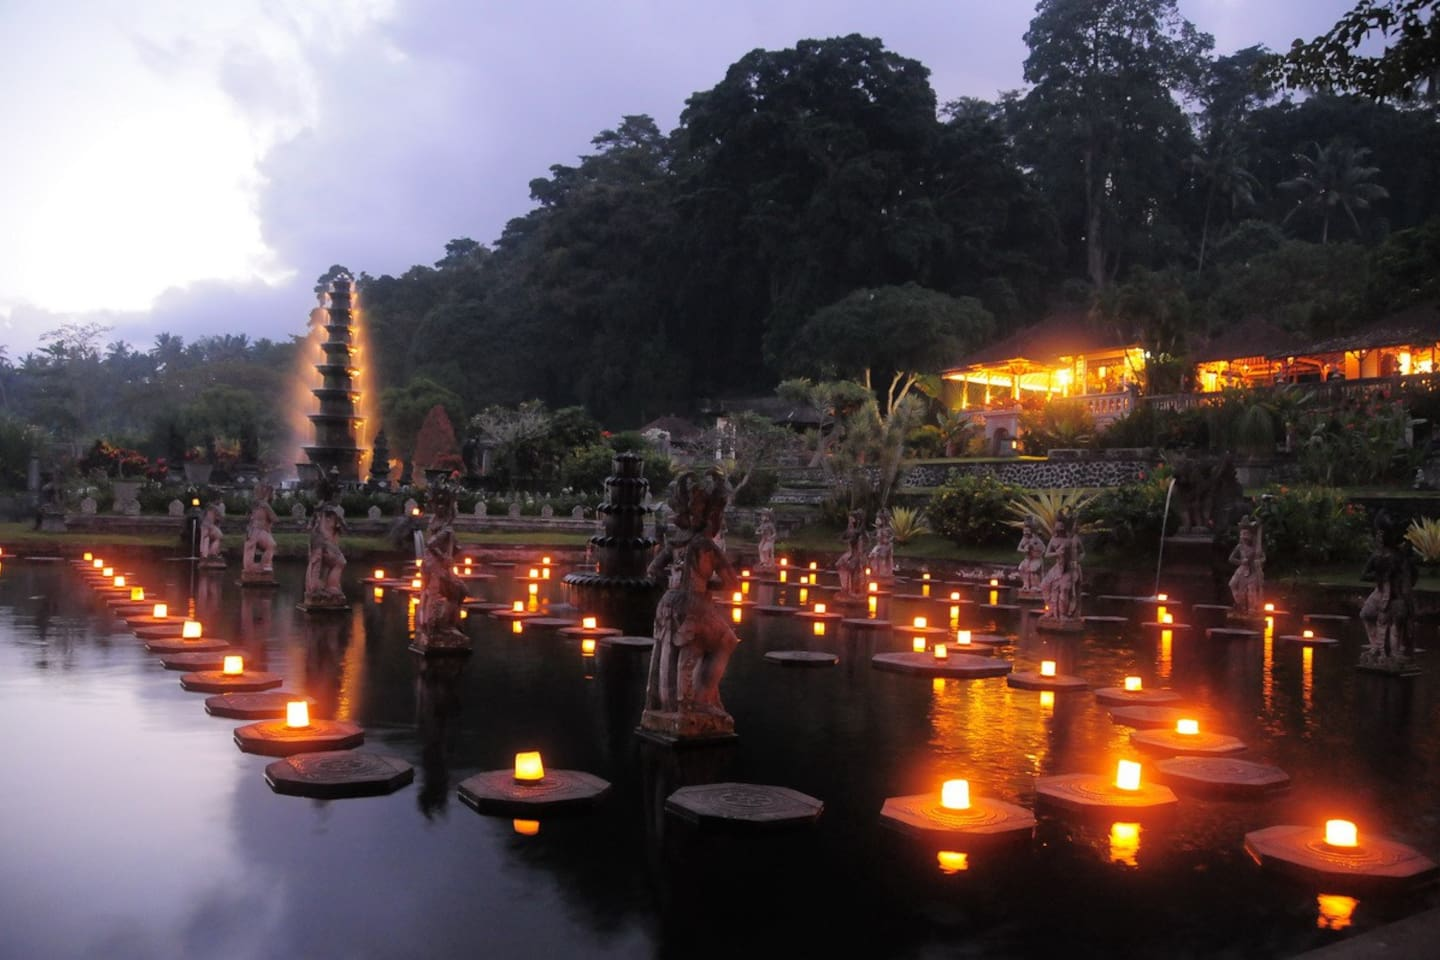 THE WATER PALACE CANDLE